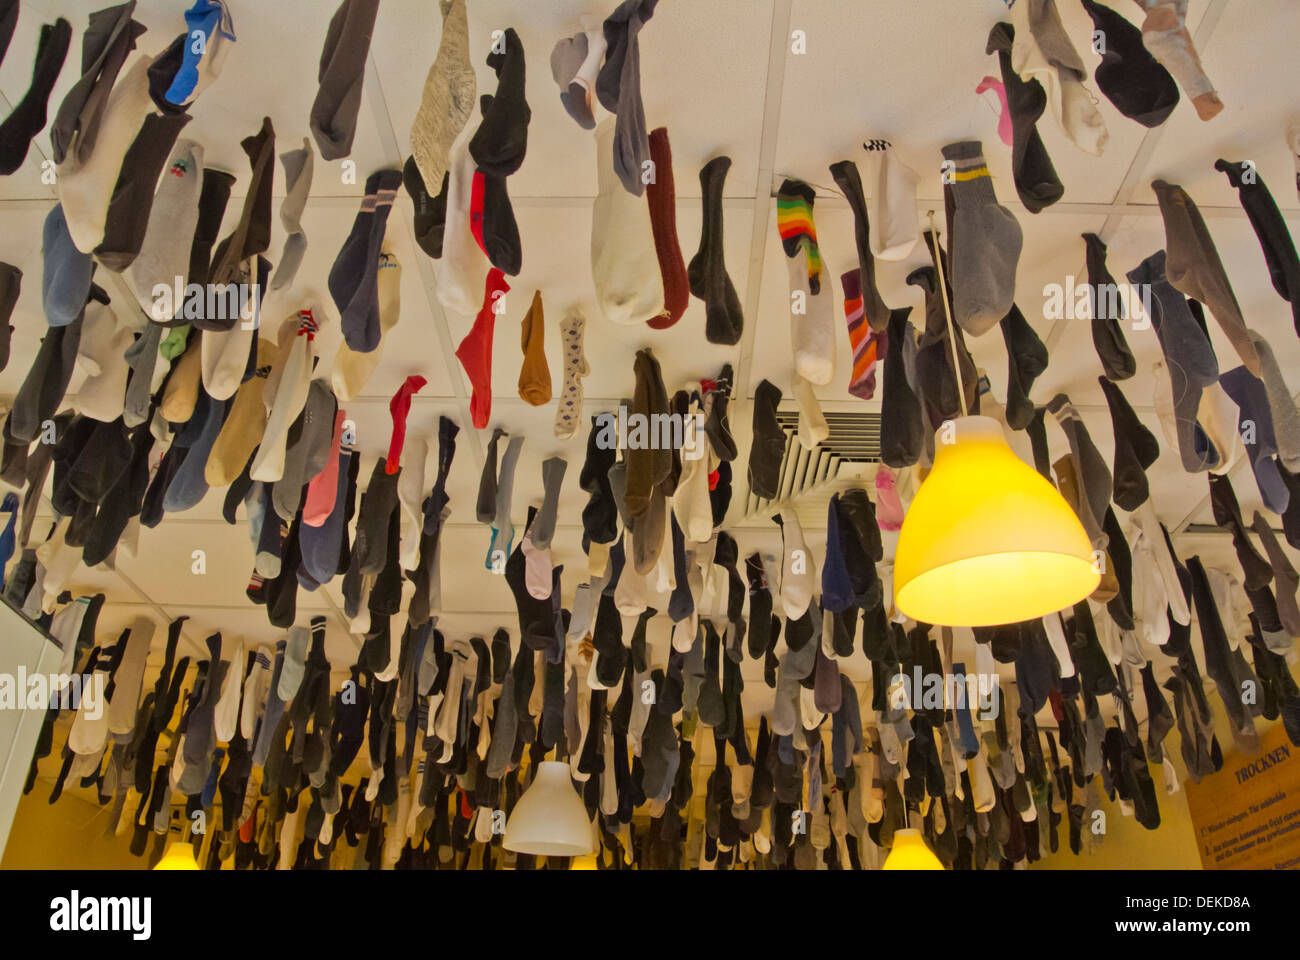 Laundrette with socks hanging from ceiling Neustadt the new town Dresden city Saxony state eastern Germany central Europe - Stock Image